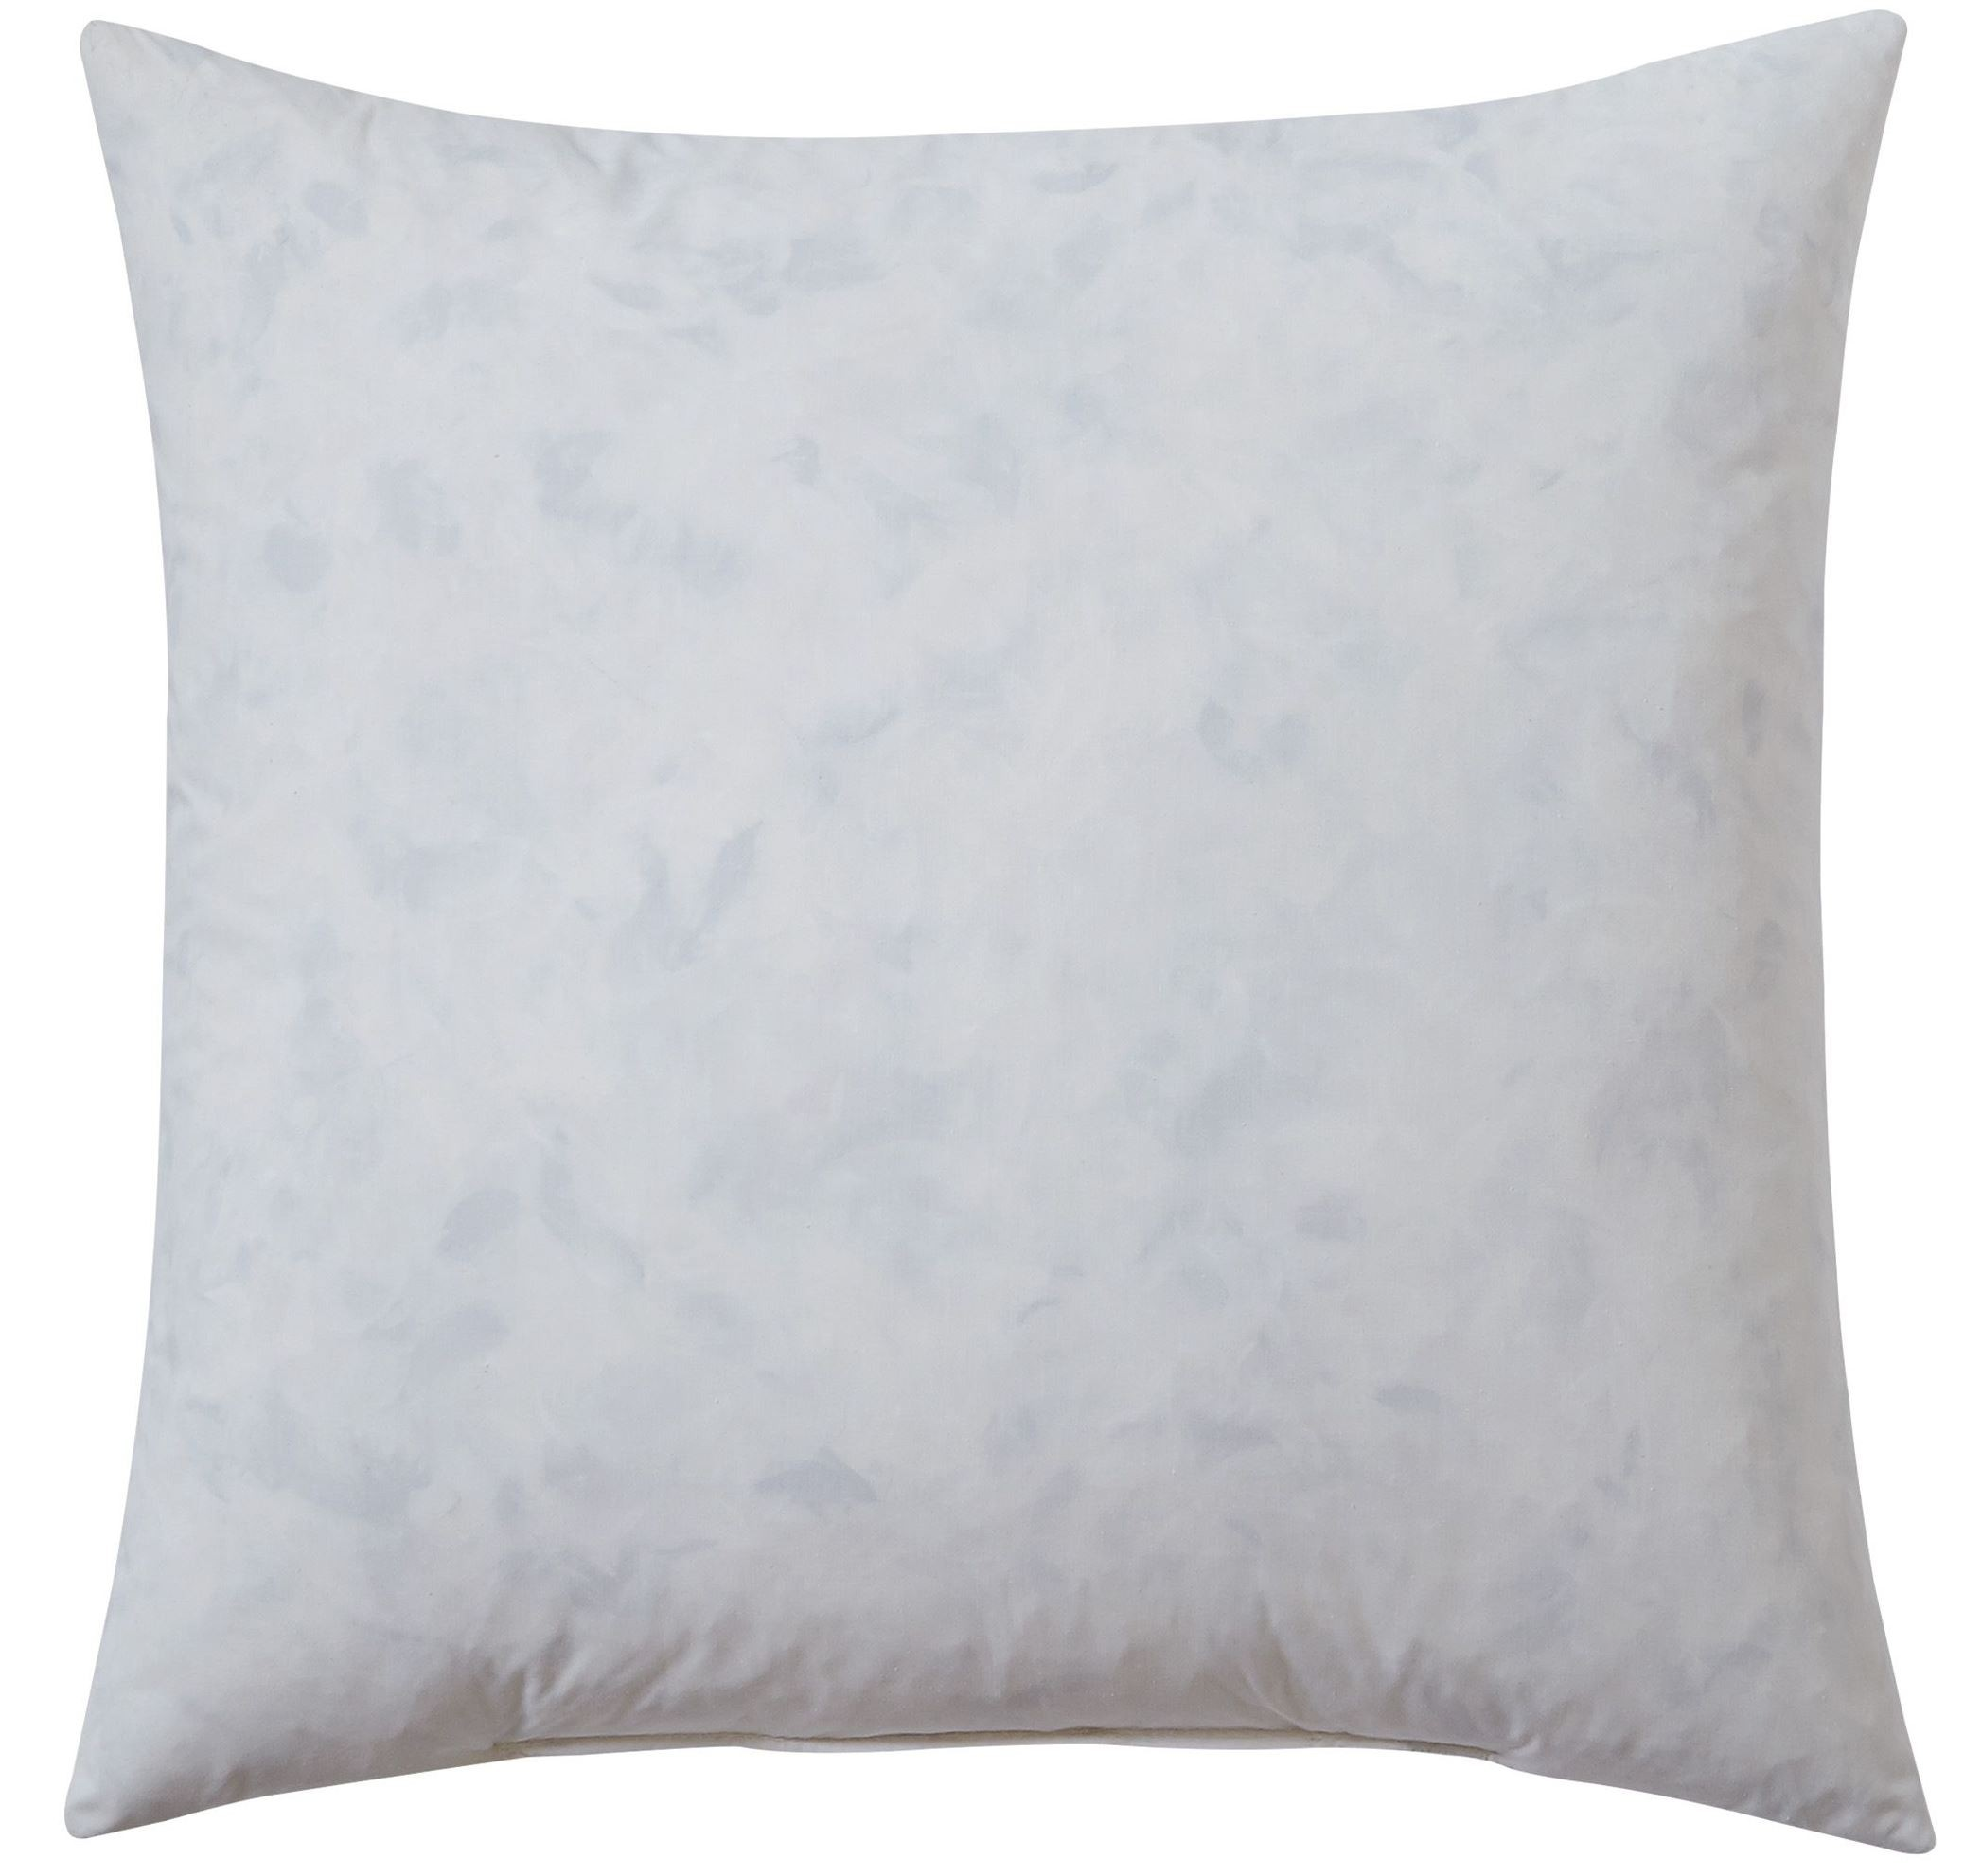 Feather-fill Large Pillow Insert Set of 4 from Ashley (A1000267) Coleman Furniture